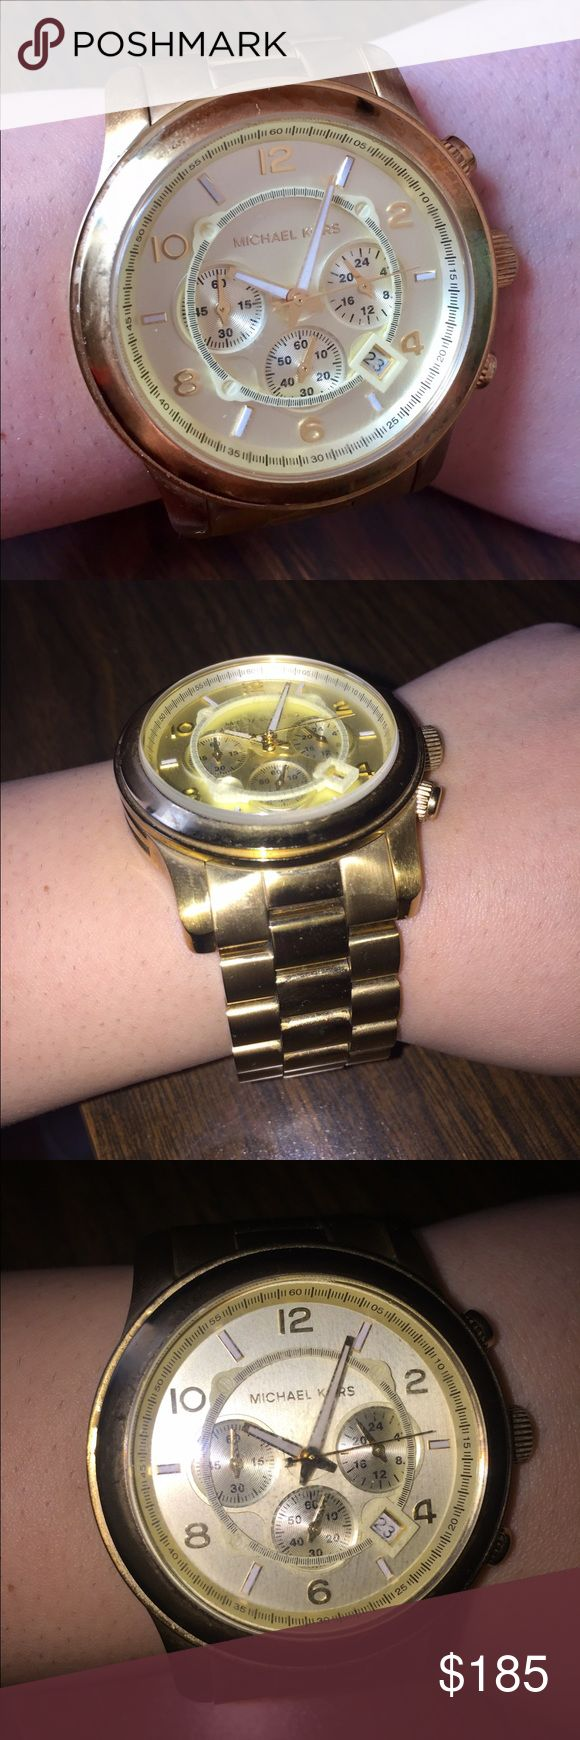 Michael Kors Gold Large Face Chronograph Watch Michael Kors Gold Large Face Chronograph Watch. Beautiful and completes any outfit. Comes with the box :) comment below for questions Michael Kors Accessories Watches